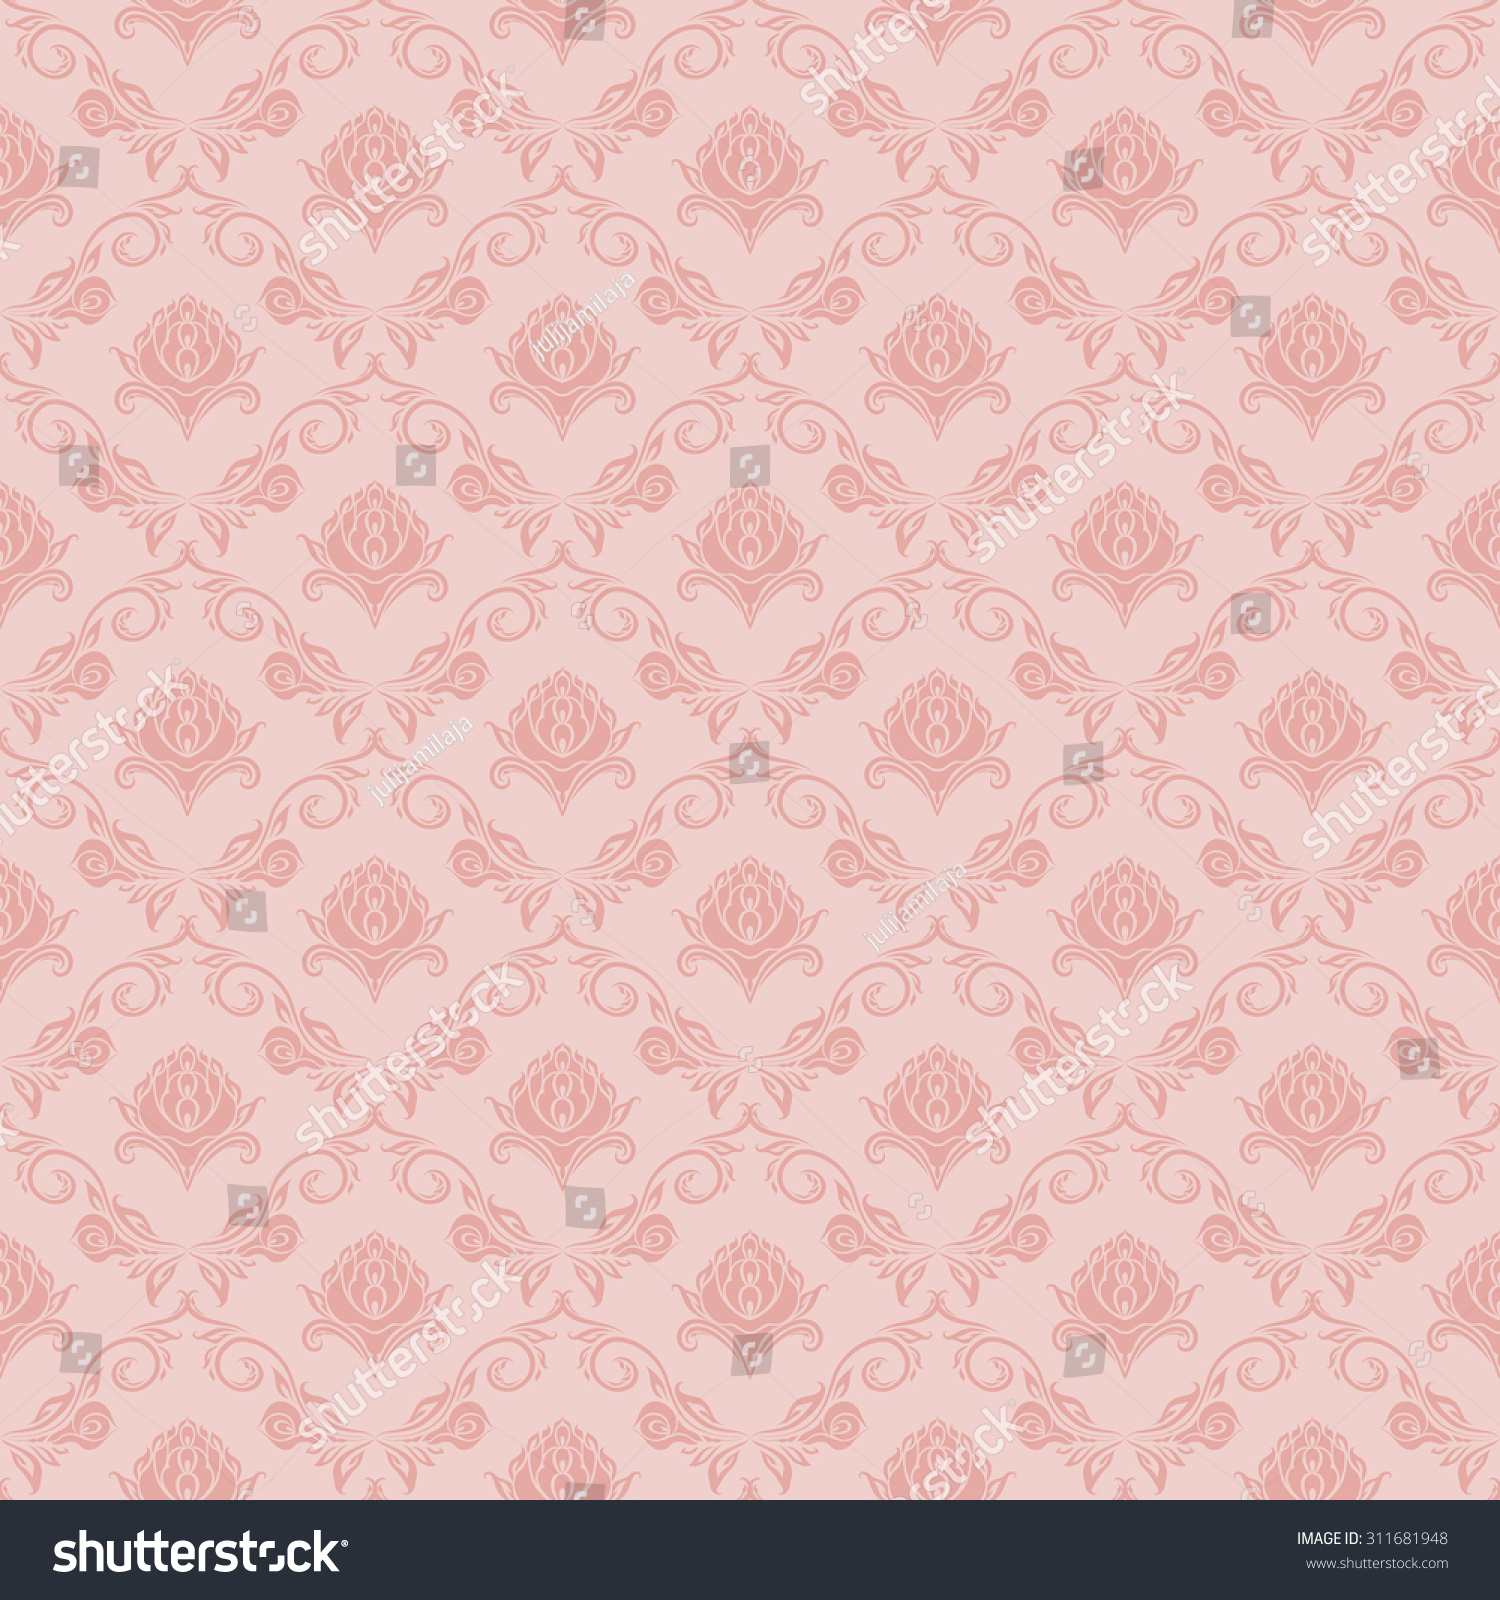 royal pink background - photo #26